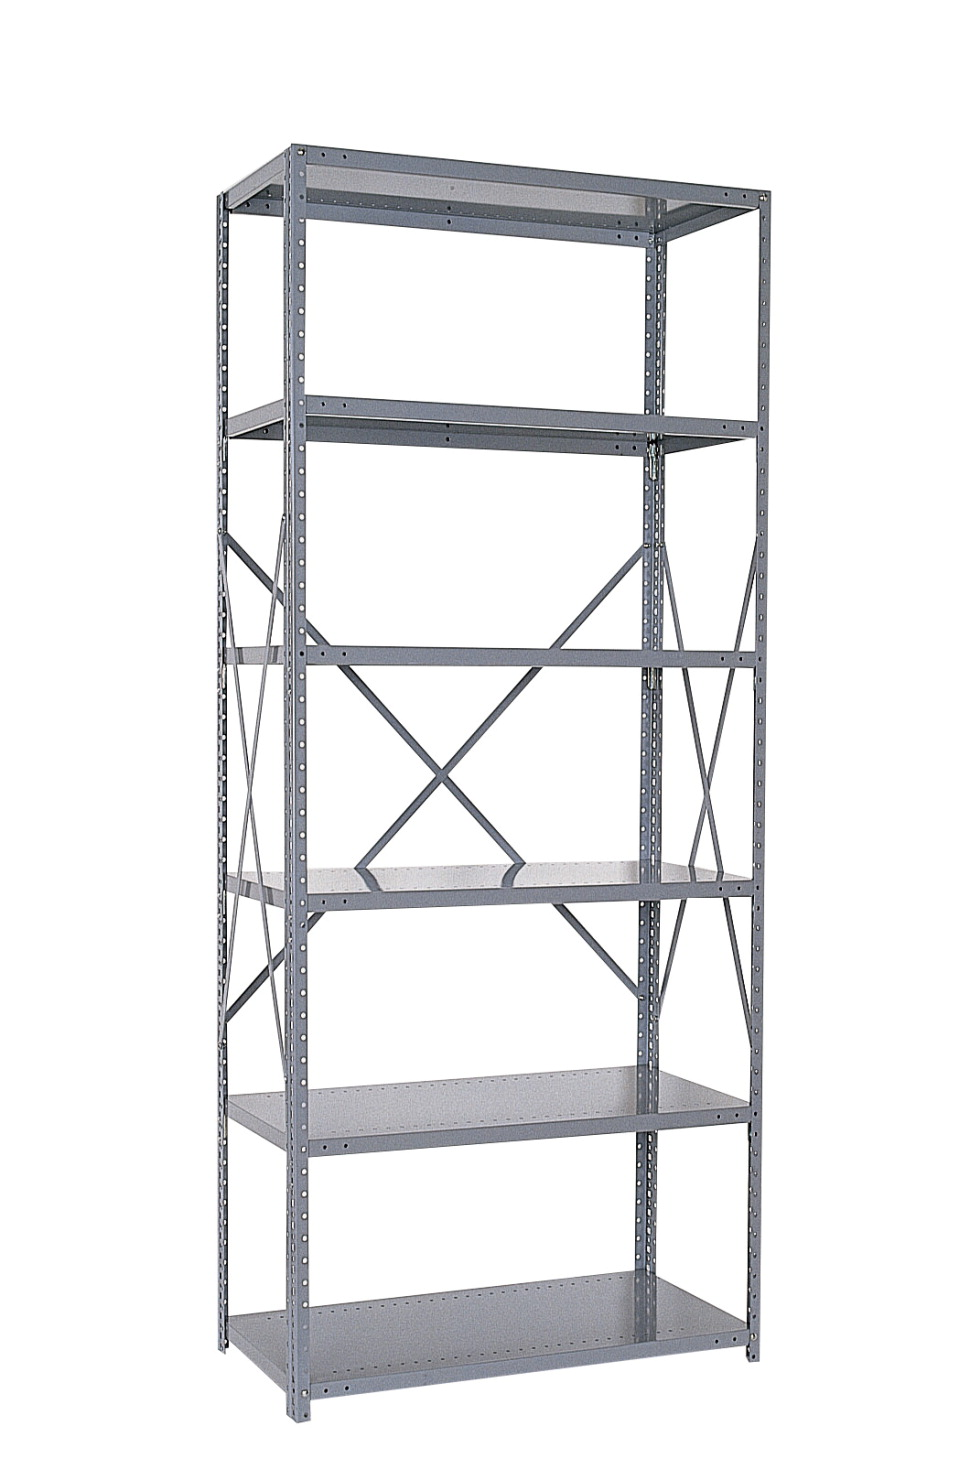 Republic Industrial Clip 5 Shelf Starter Open Unit, 36 x 24 x 85 Inches, Various Options